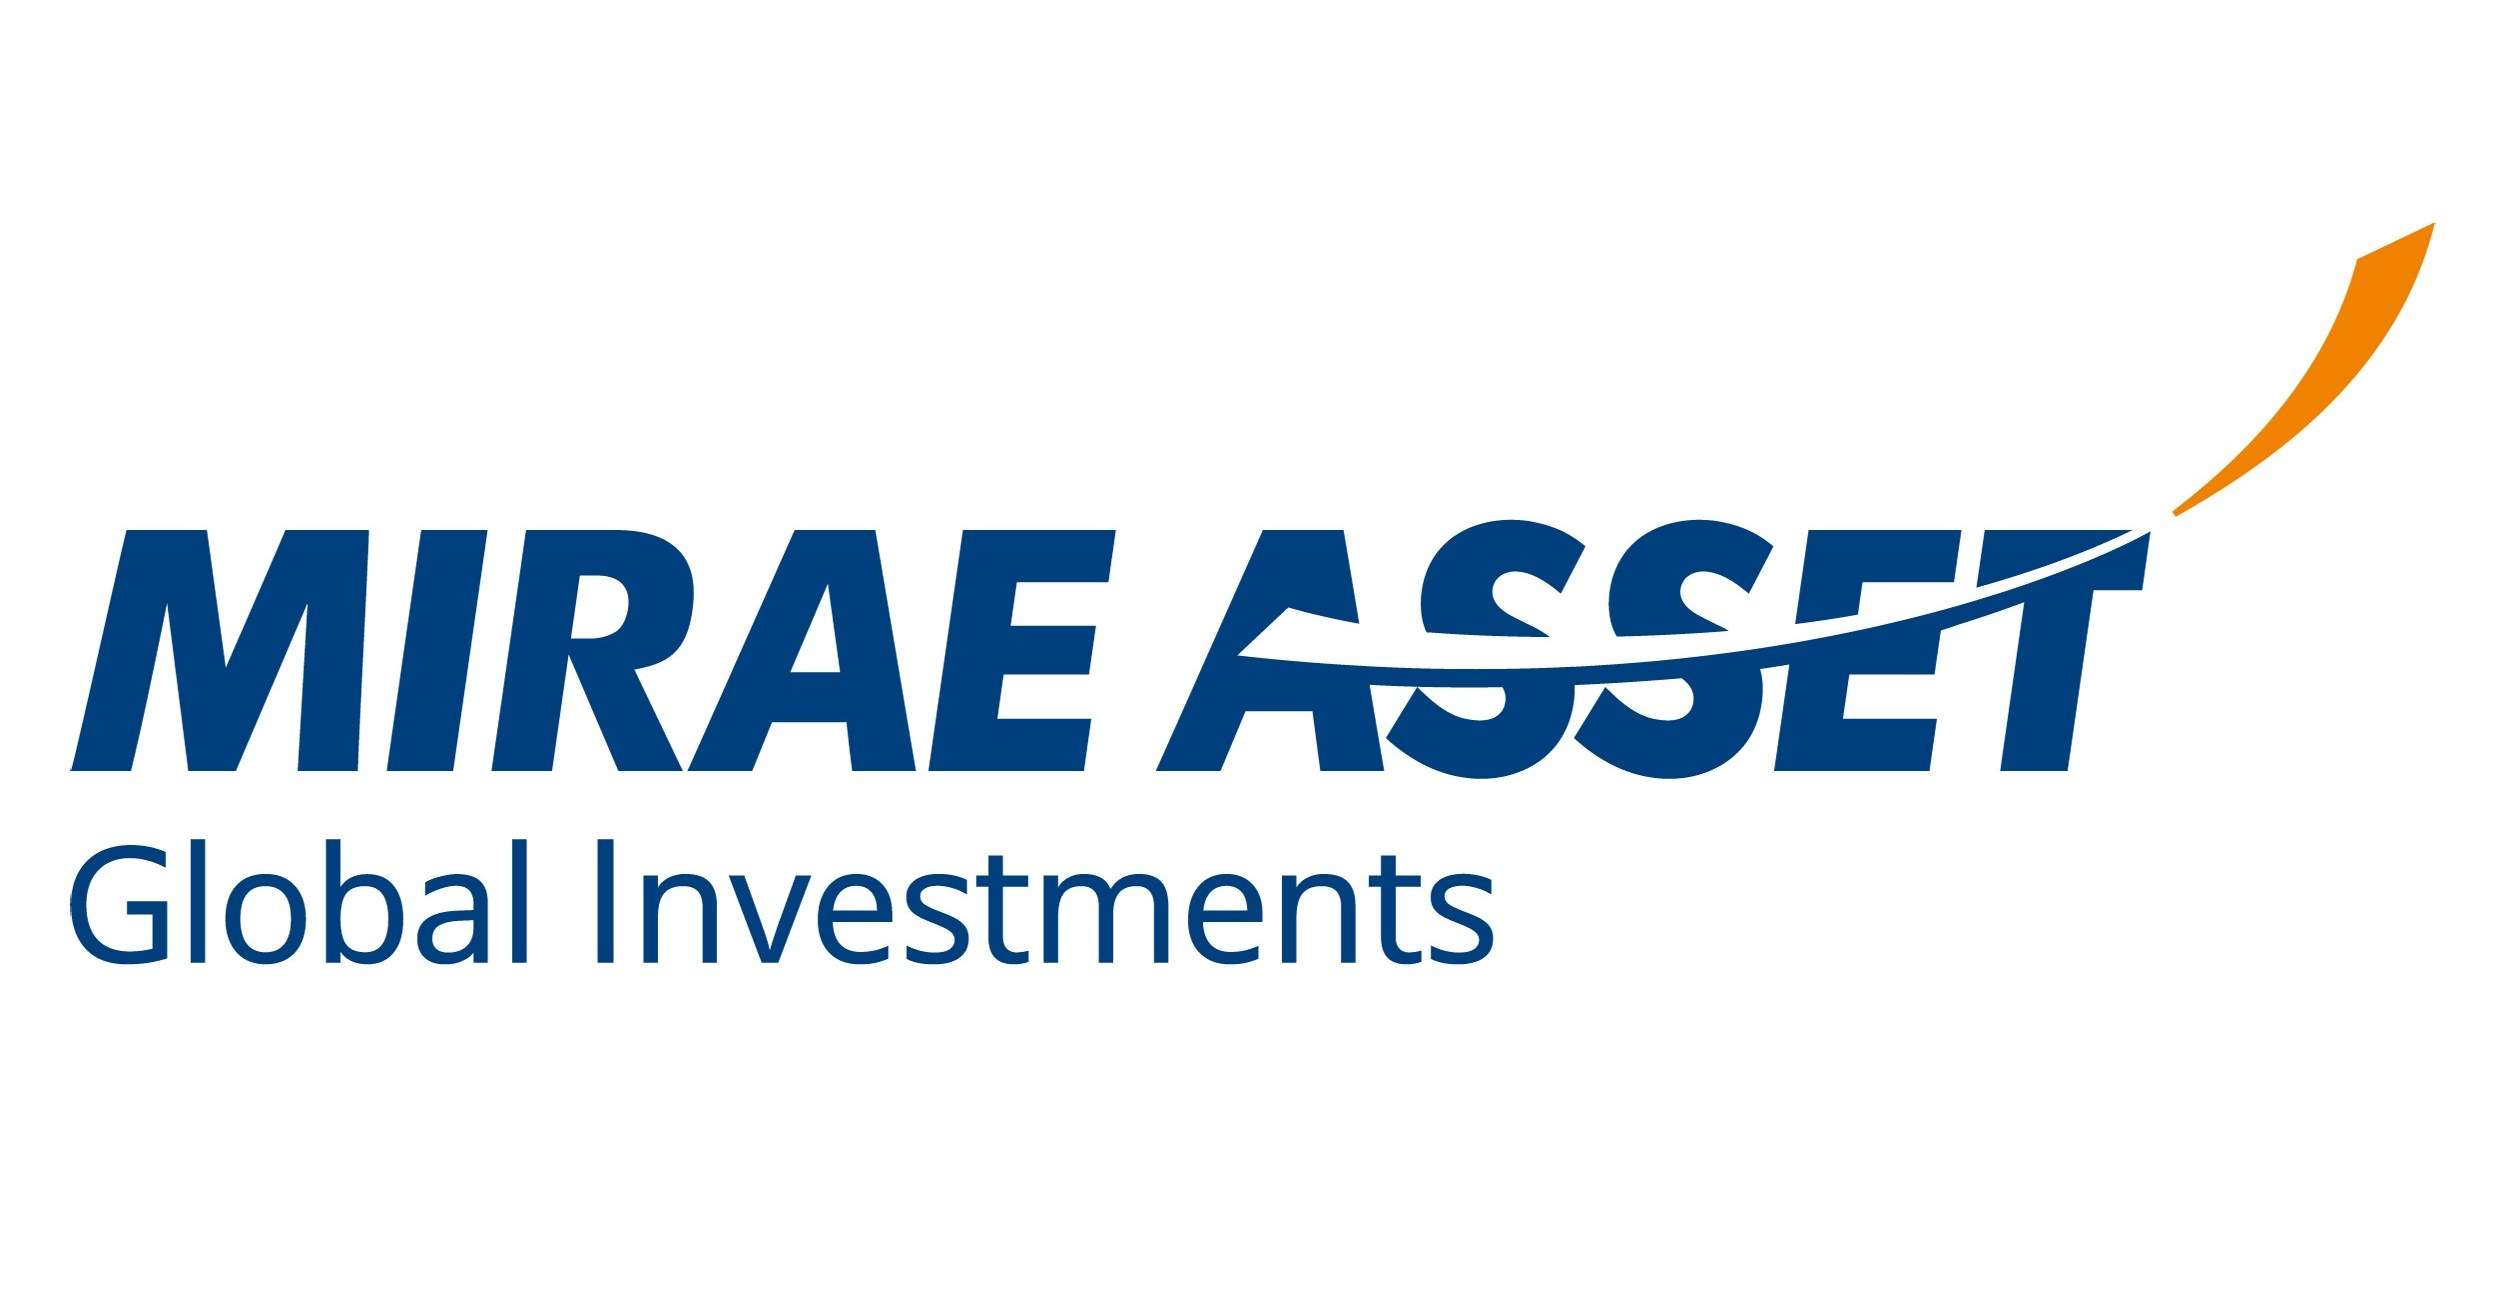 Mirae asset maps investment management vlg investments for dummies